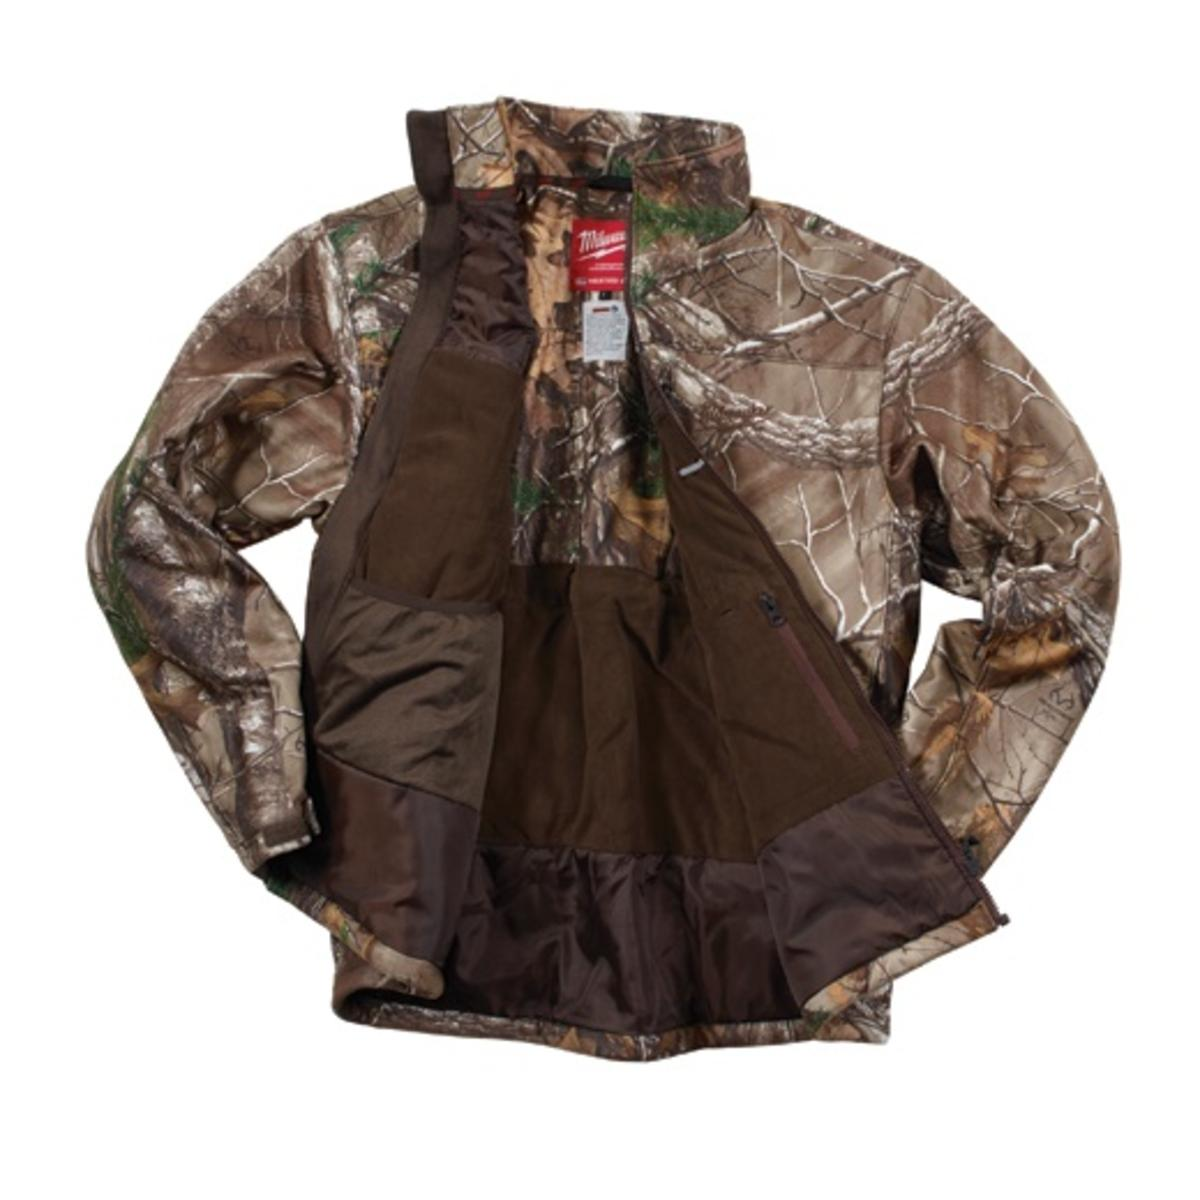 fe62aa8a915b5 Milwaukee M12 Realtree Xtra Heated Jacket Kit - The Warming Store